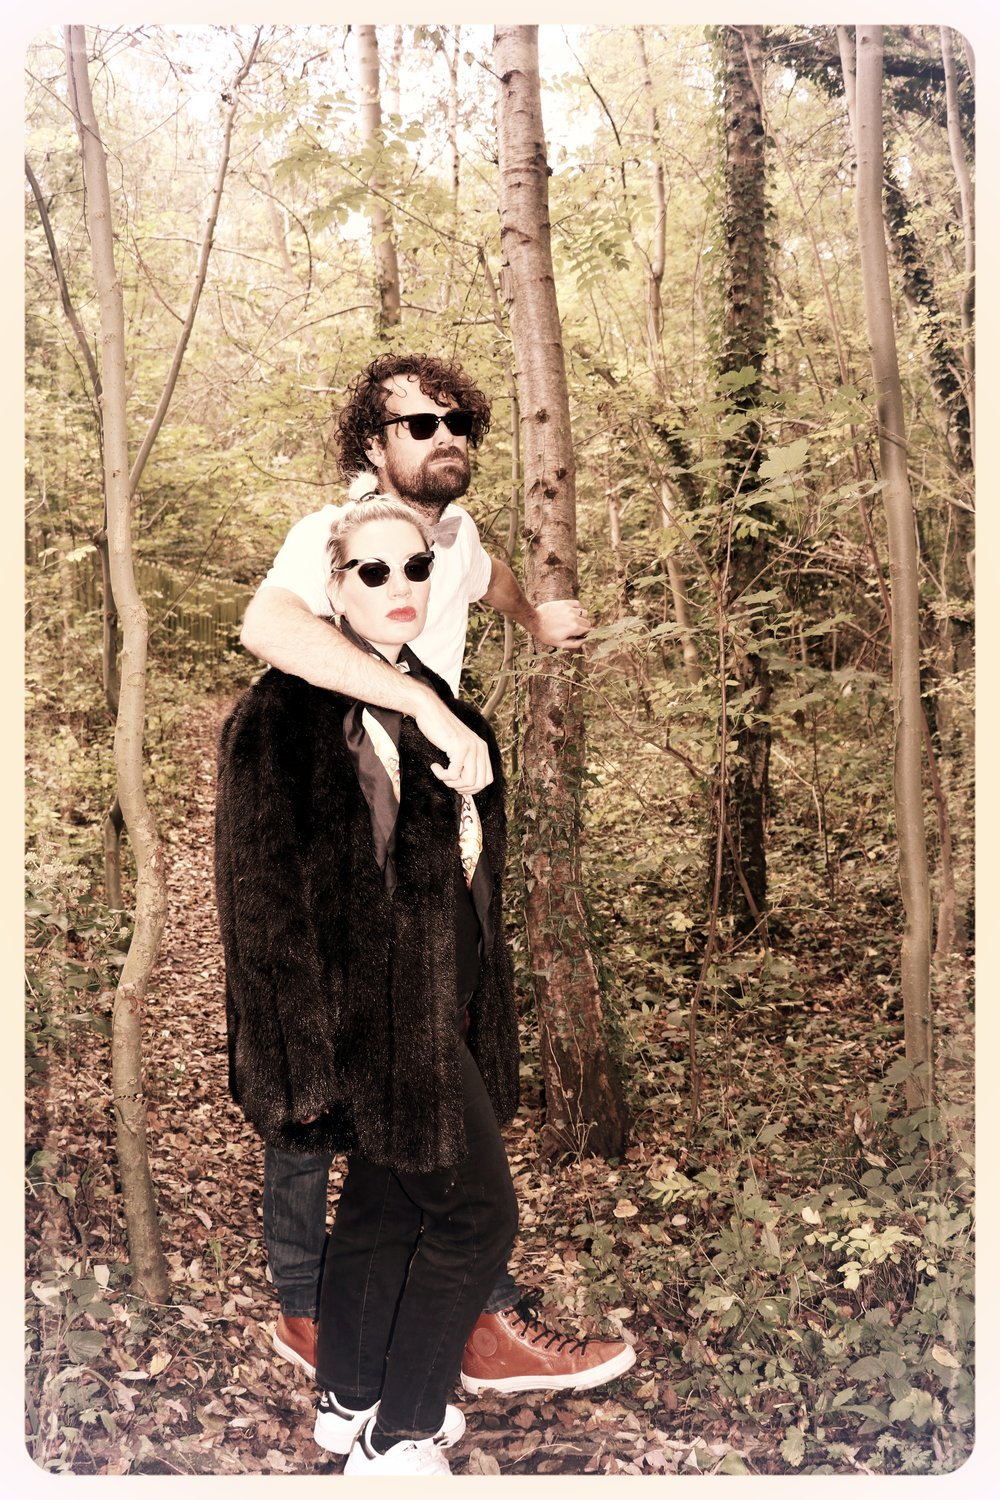 Peep Eyewear, Vintage Sunglasses, Worn in the woods, Autumn Winter Collection